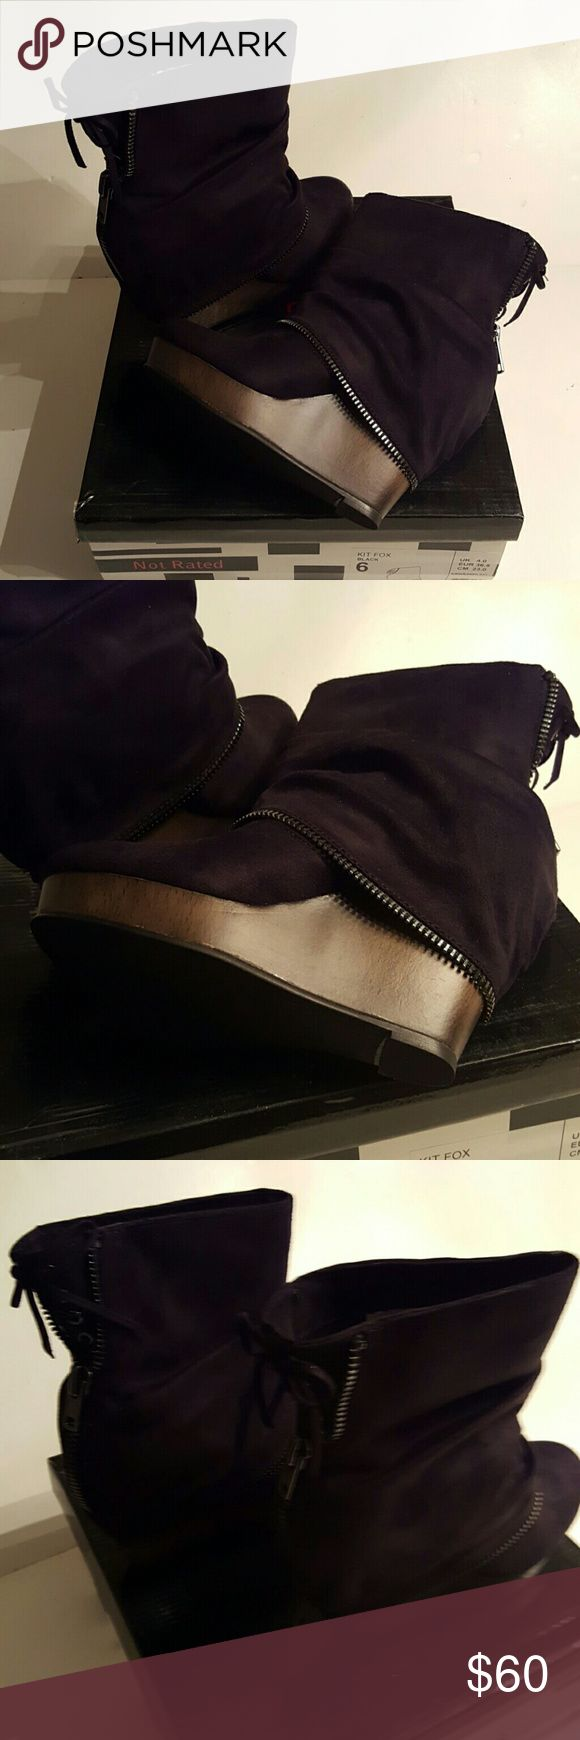 Not Rated Kit Fox Black Boots size US 6 EU 36.5 Not Rated Kit Fox Black Boots size US 6 EU 36.5 new in box Not Rated Shoes Ankle Boots & Booties